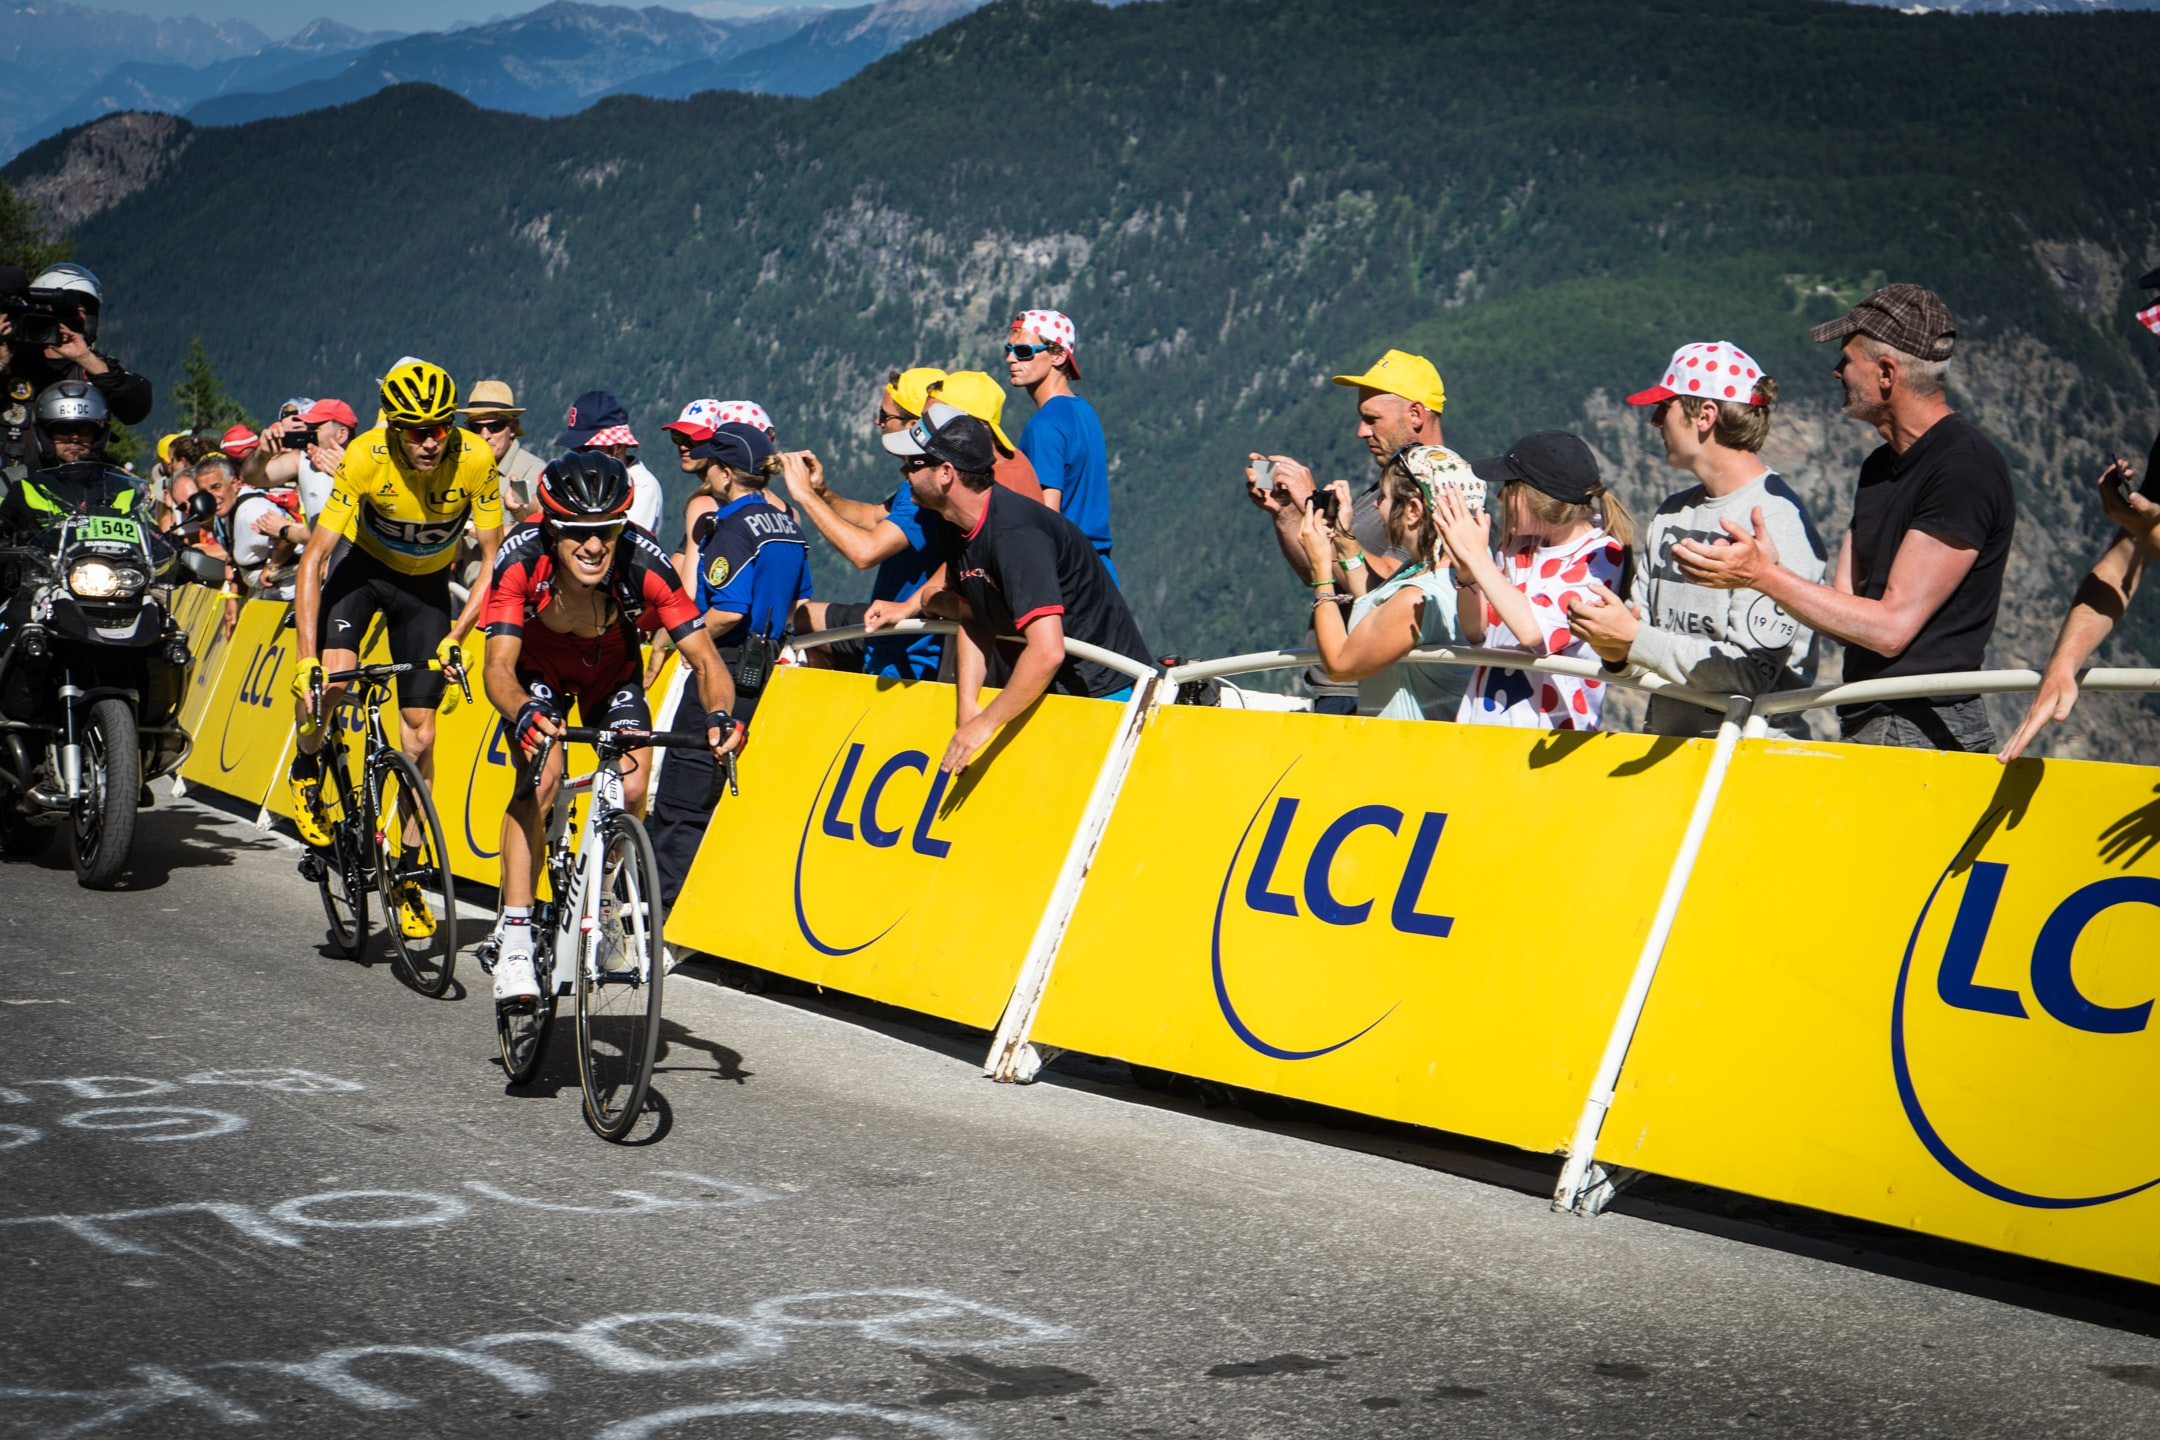 Cyclists and a dirt bike passing fans at the Tour de France race in France